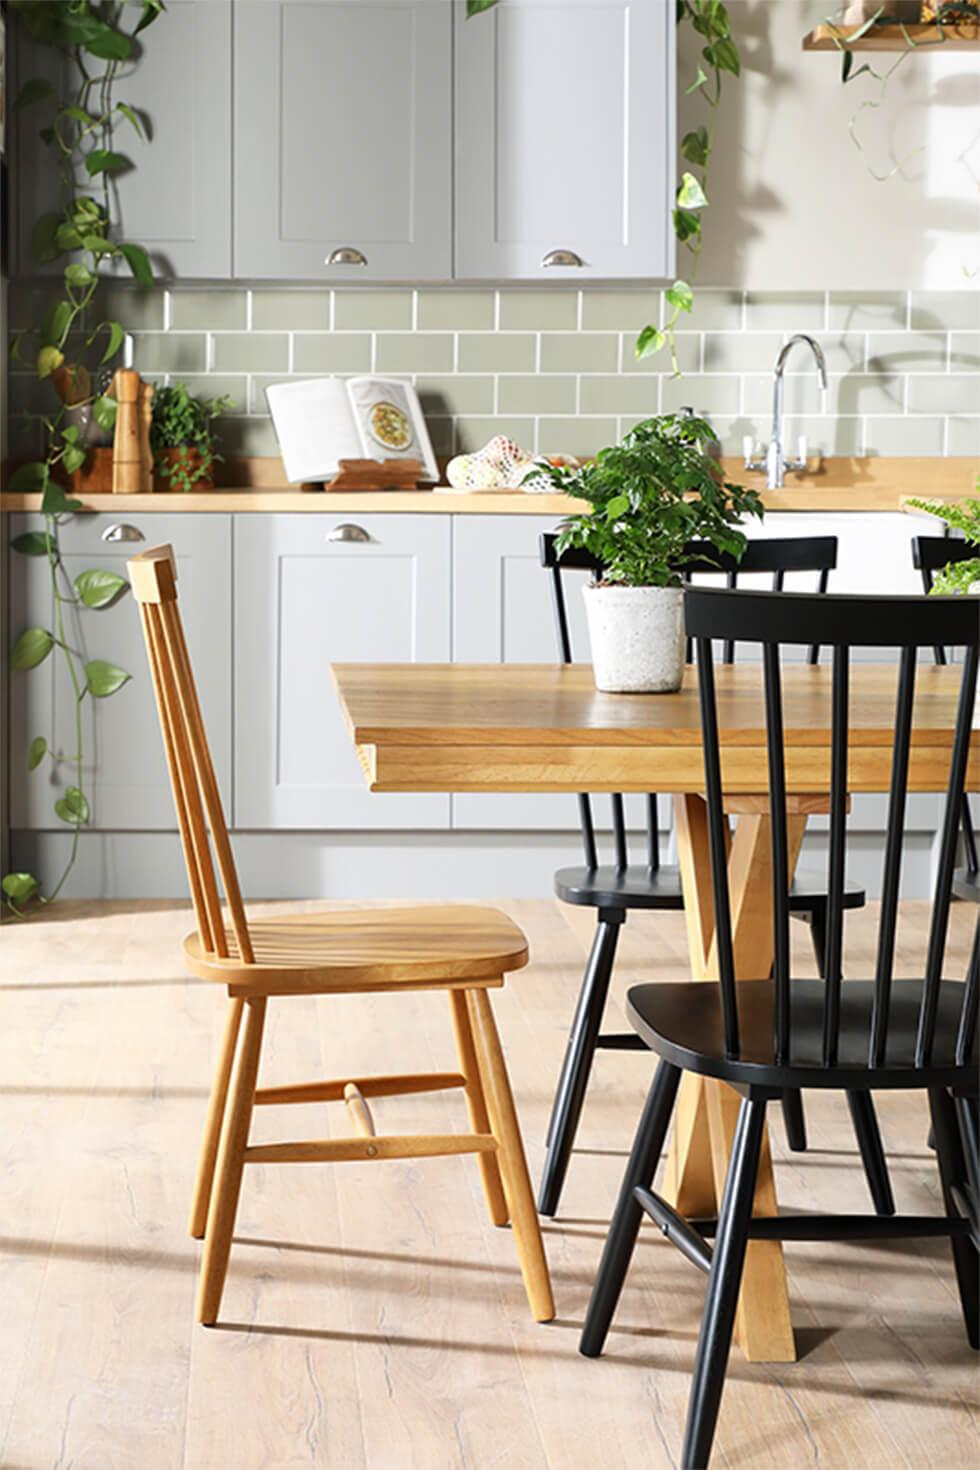 Mismatched chairs and an oak dining table in a contemporary kitchen with plants